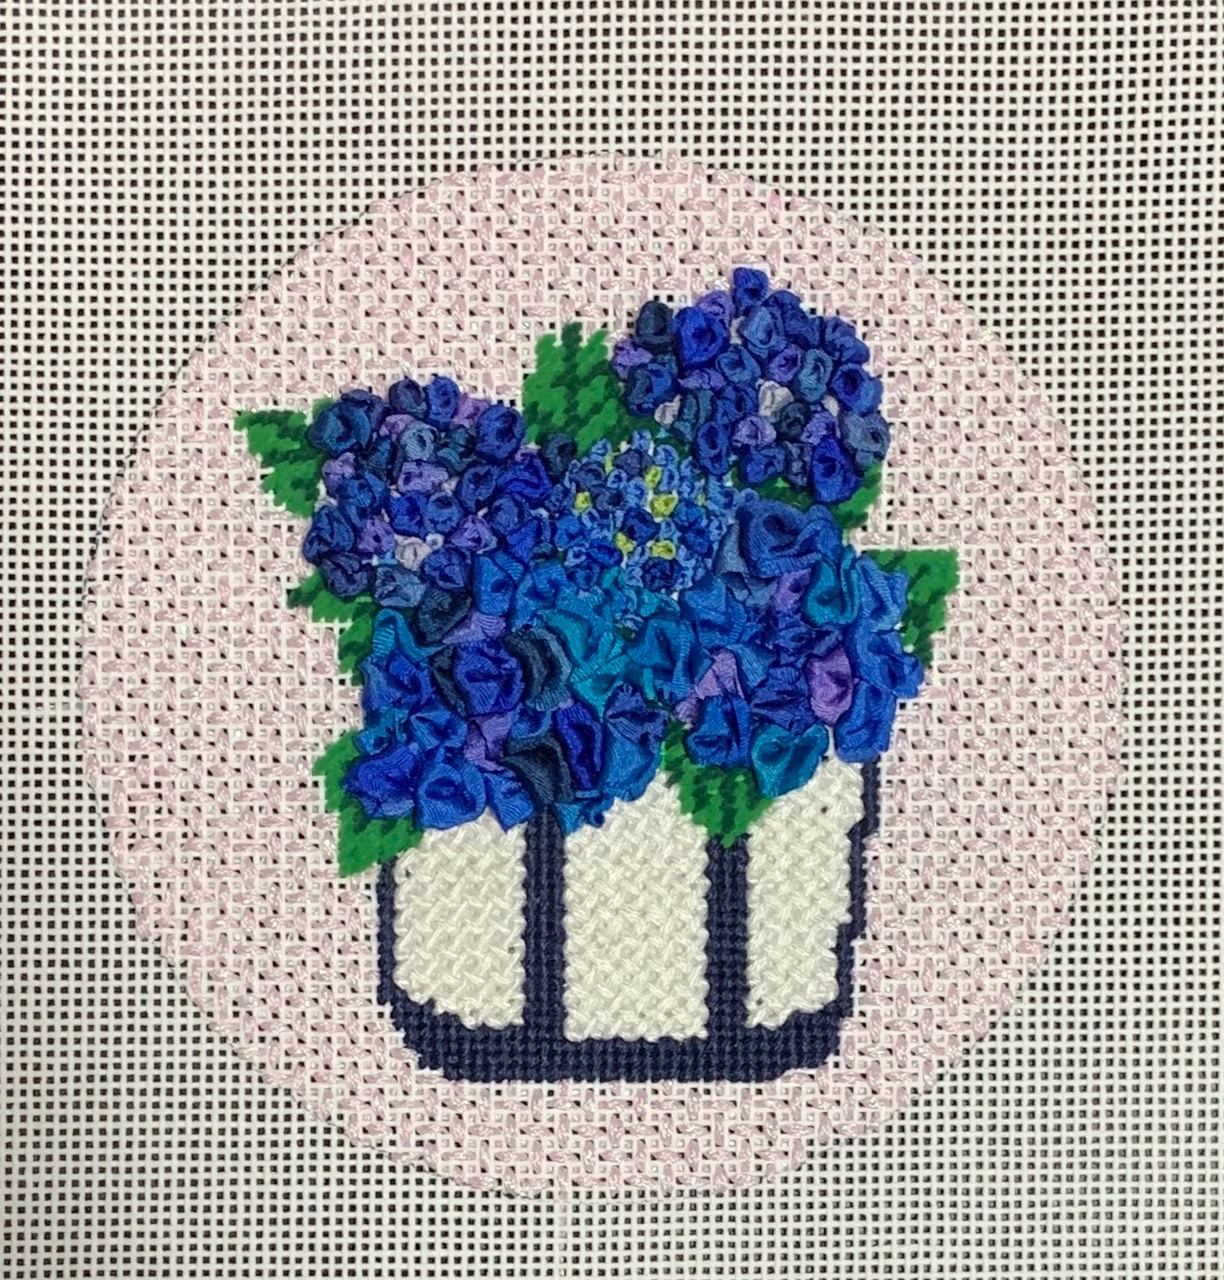 Tote Bag with Hydrangeas Zoom Class